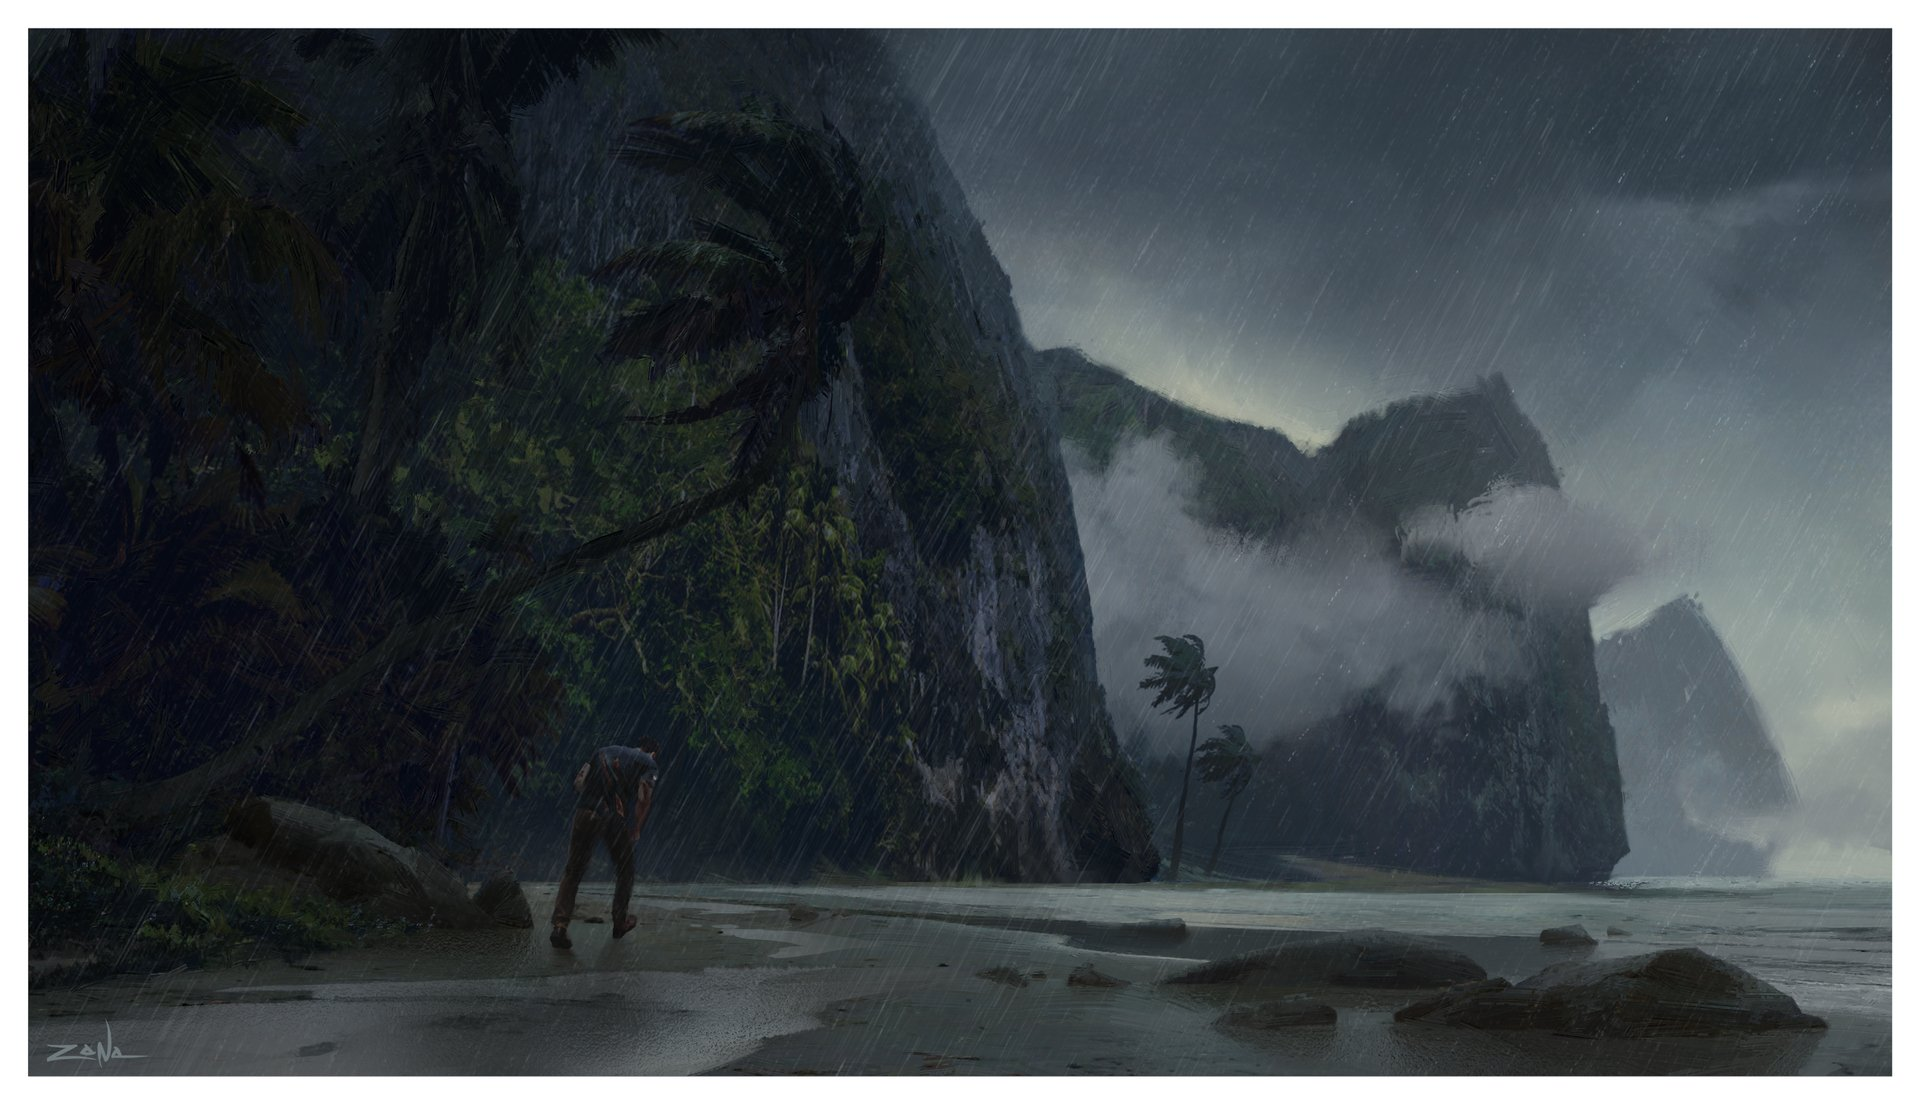 Uncharted 4 A Thiefs End Concept Artwork Sets The Mood For A Tropical Storm